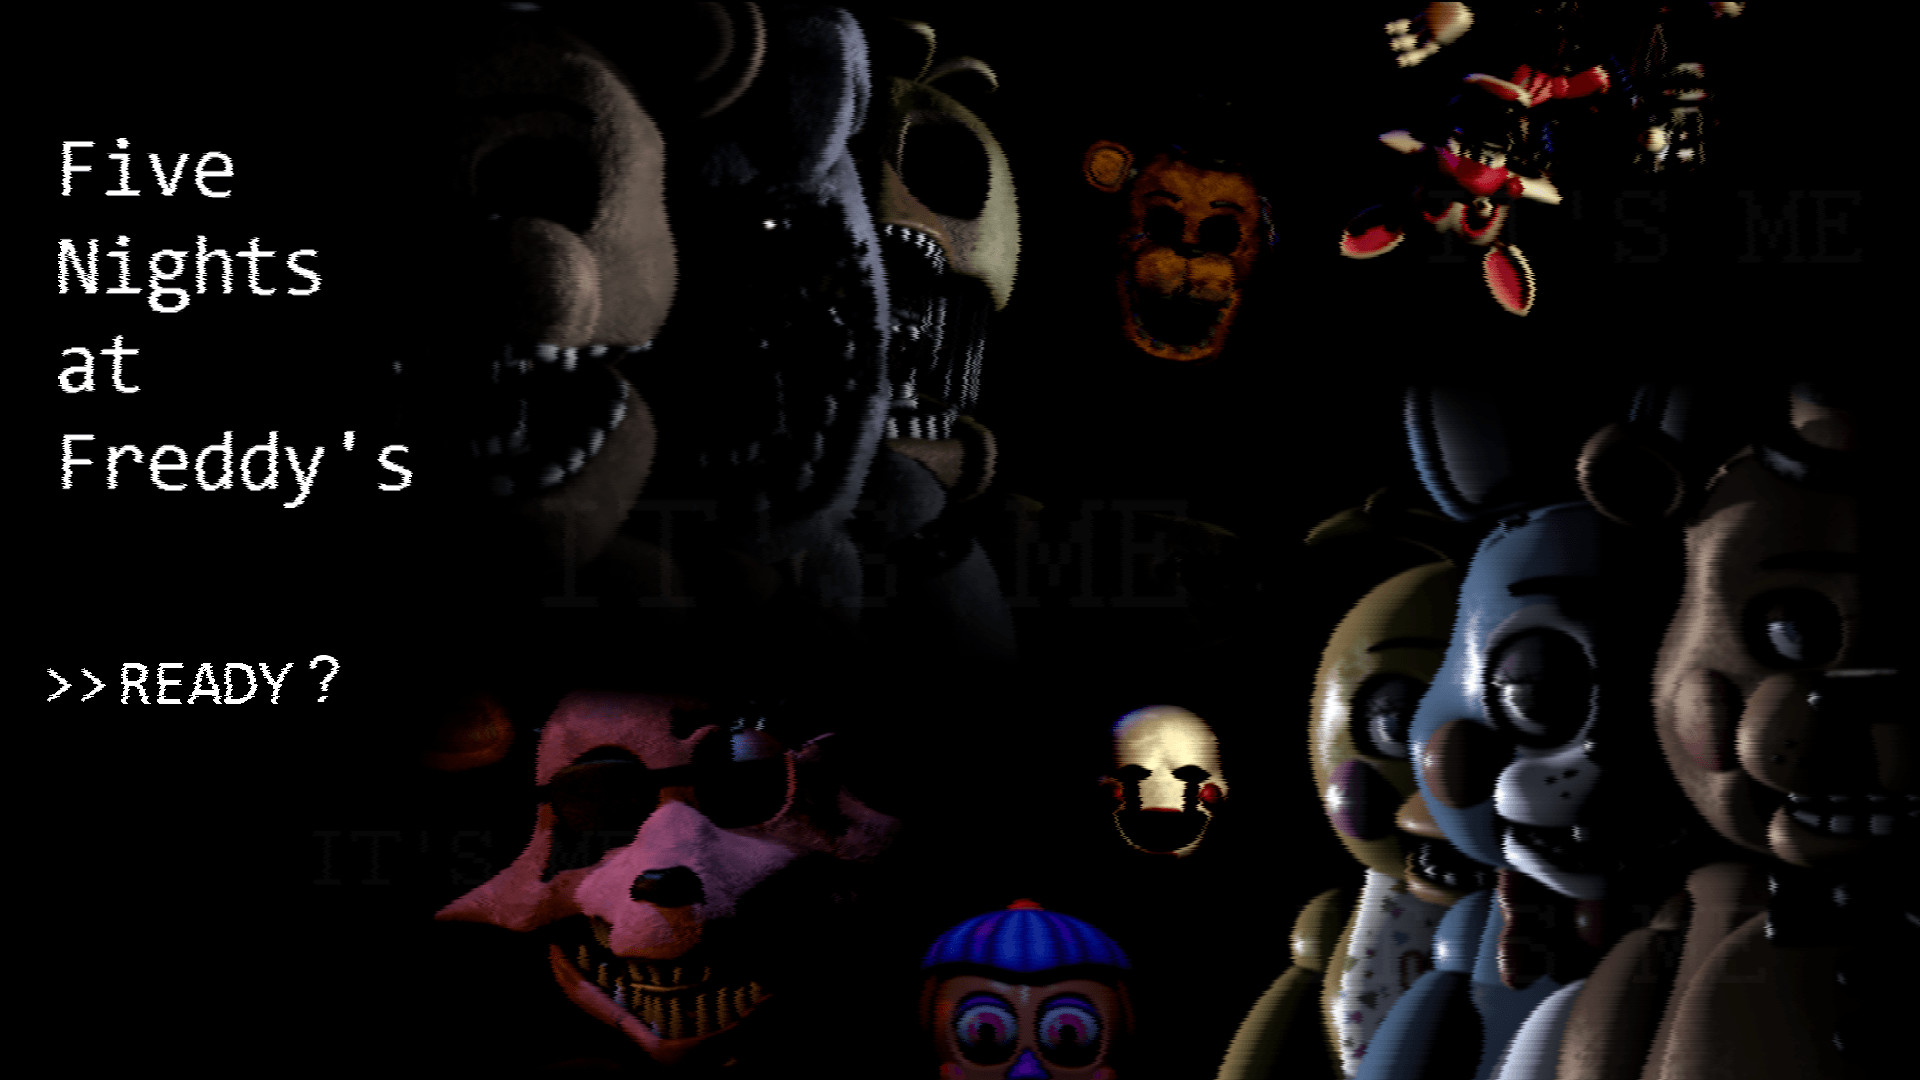 Five Nights At Freddies Wallpaper Posted By Zoey Peltier